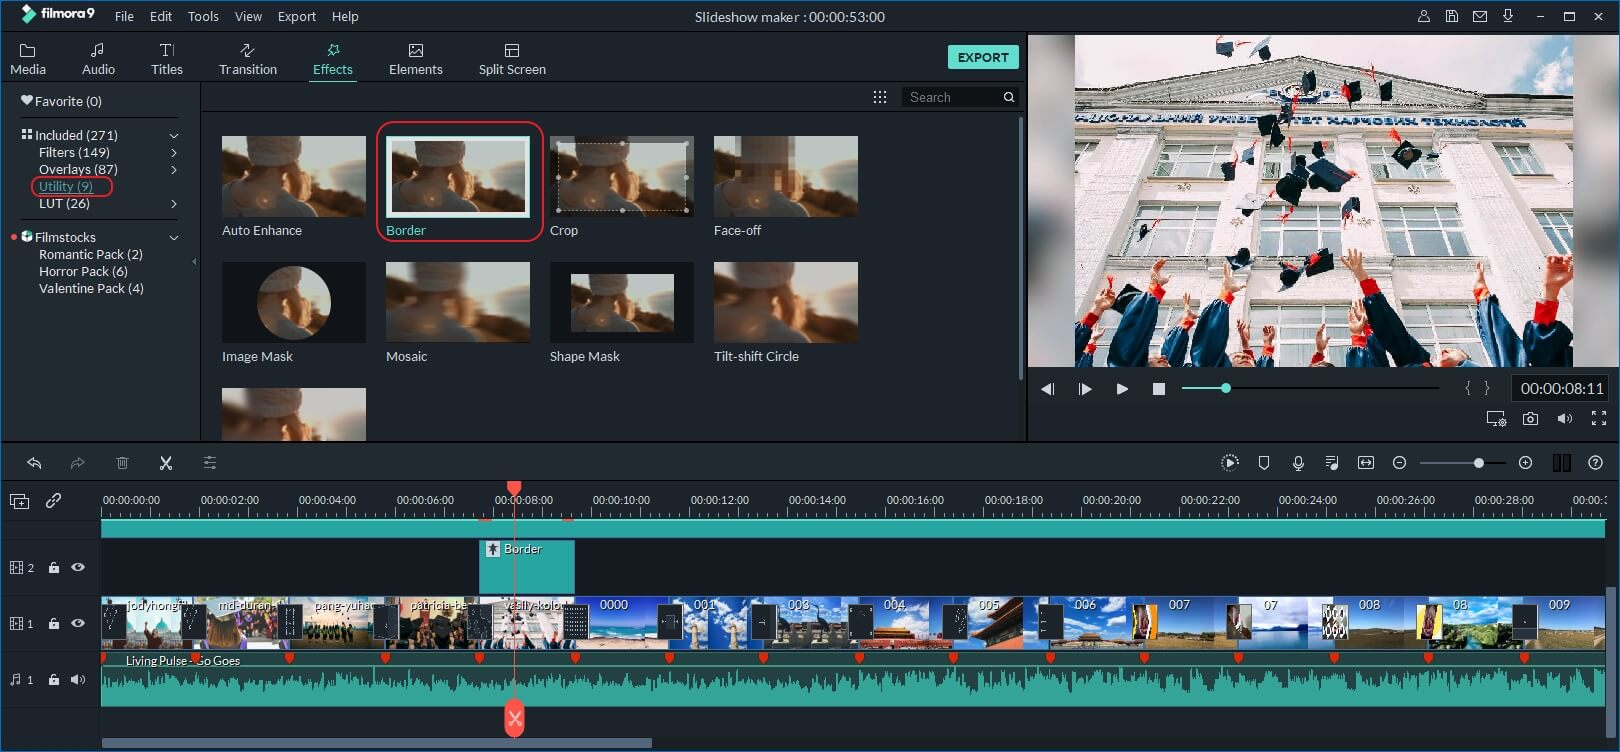 Make graduation video with Filmora9 - add frame